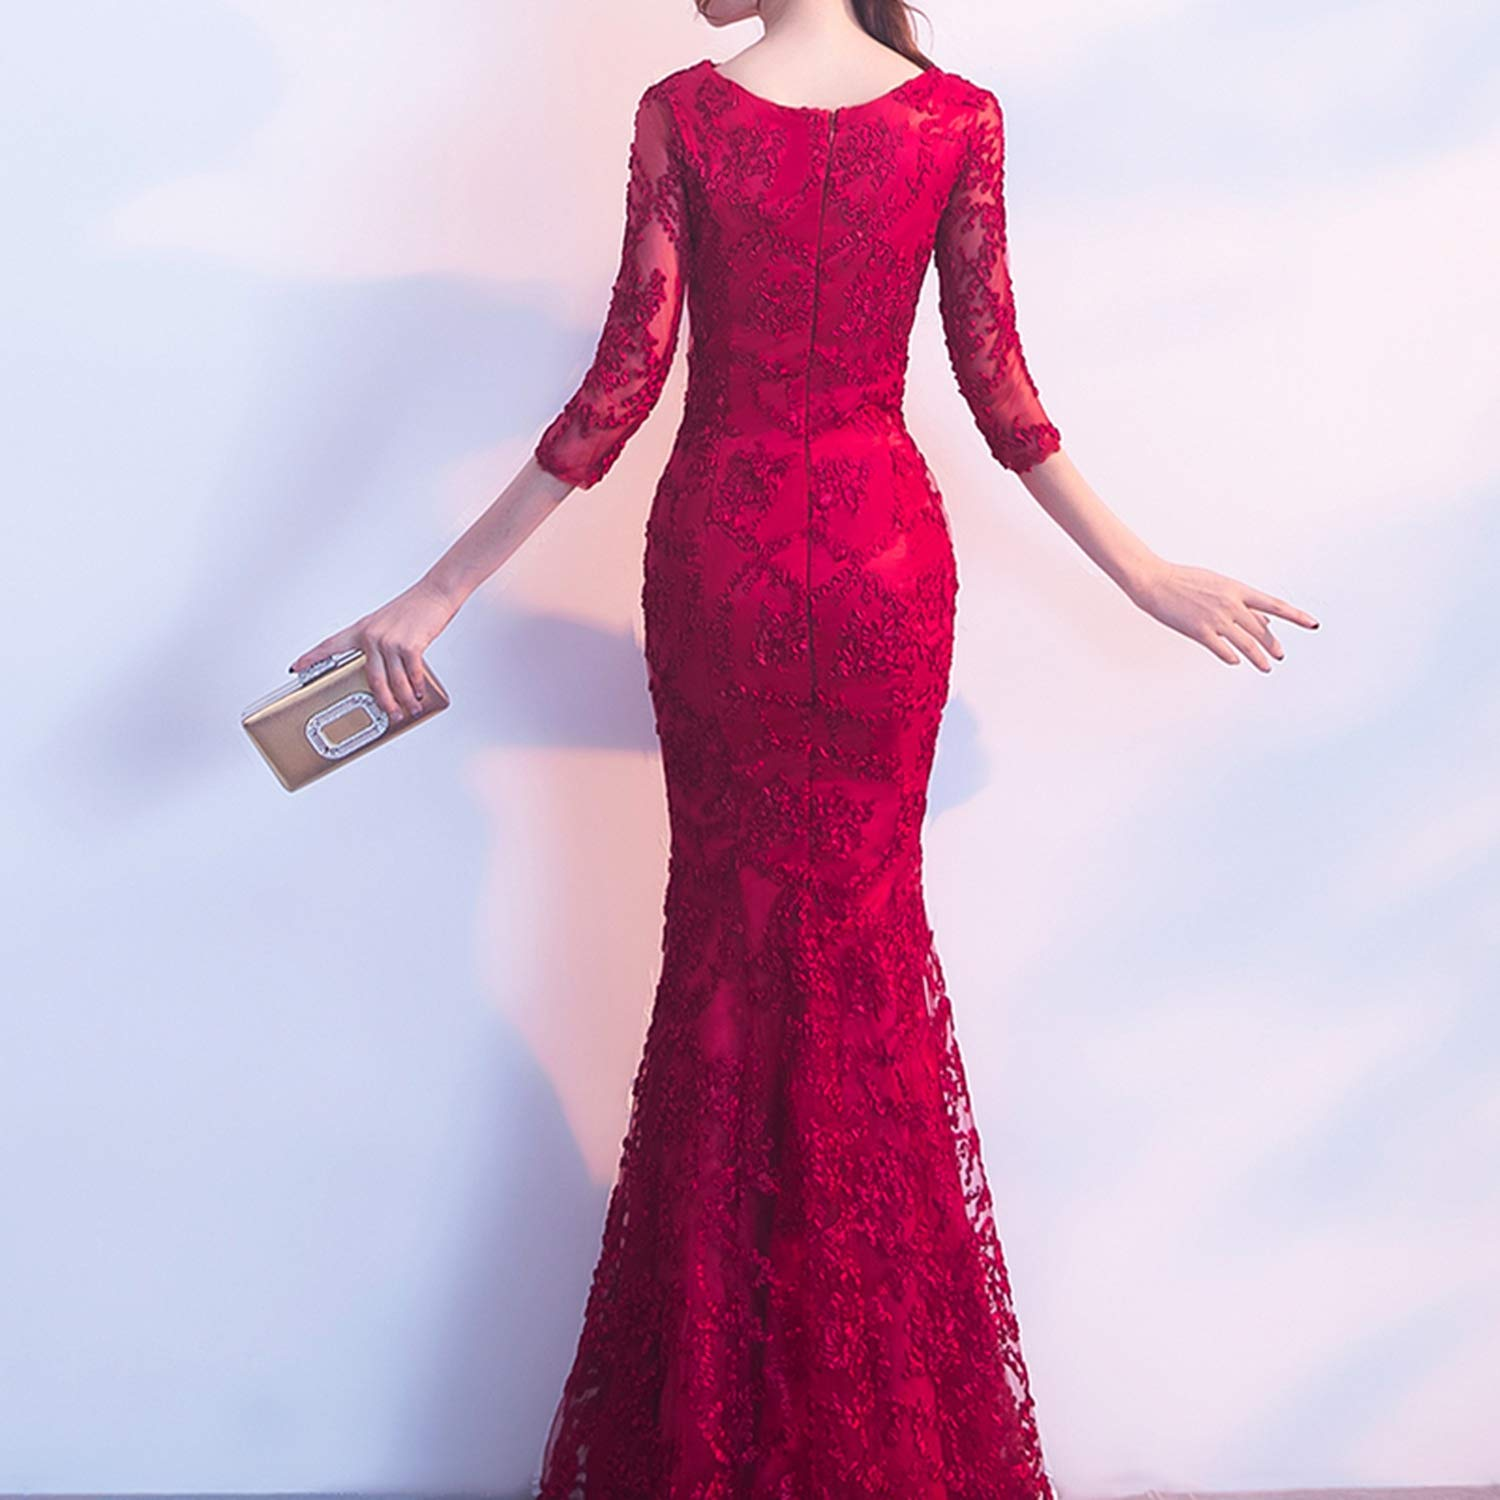 Long Formal Sleeve Evening Dresses Color Vestido Party Evens Gowns,red,16W,Floor Length